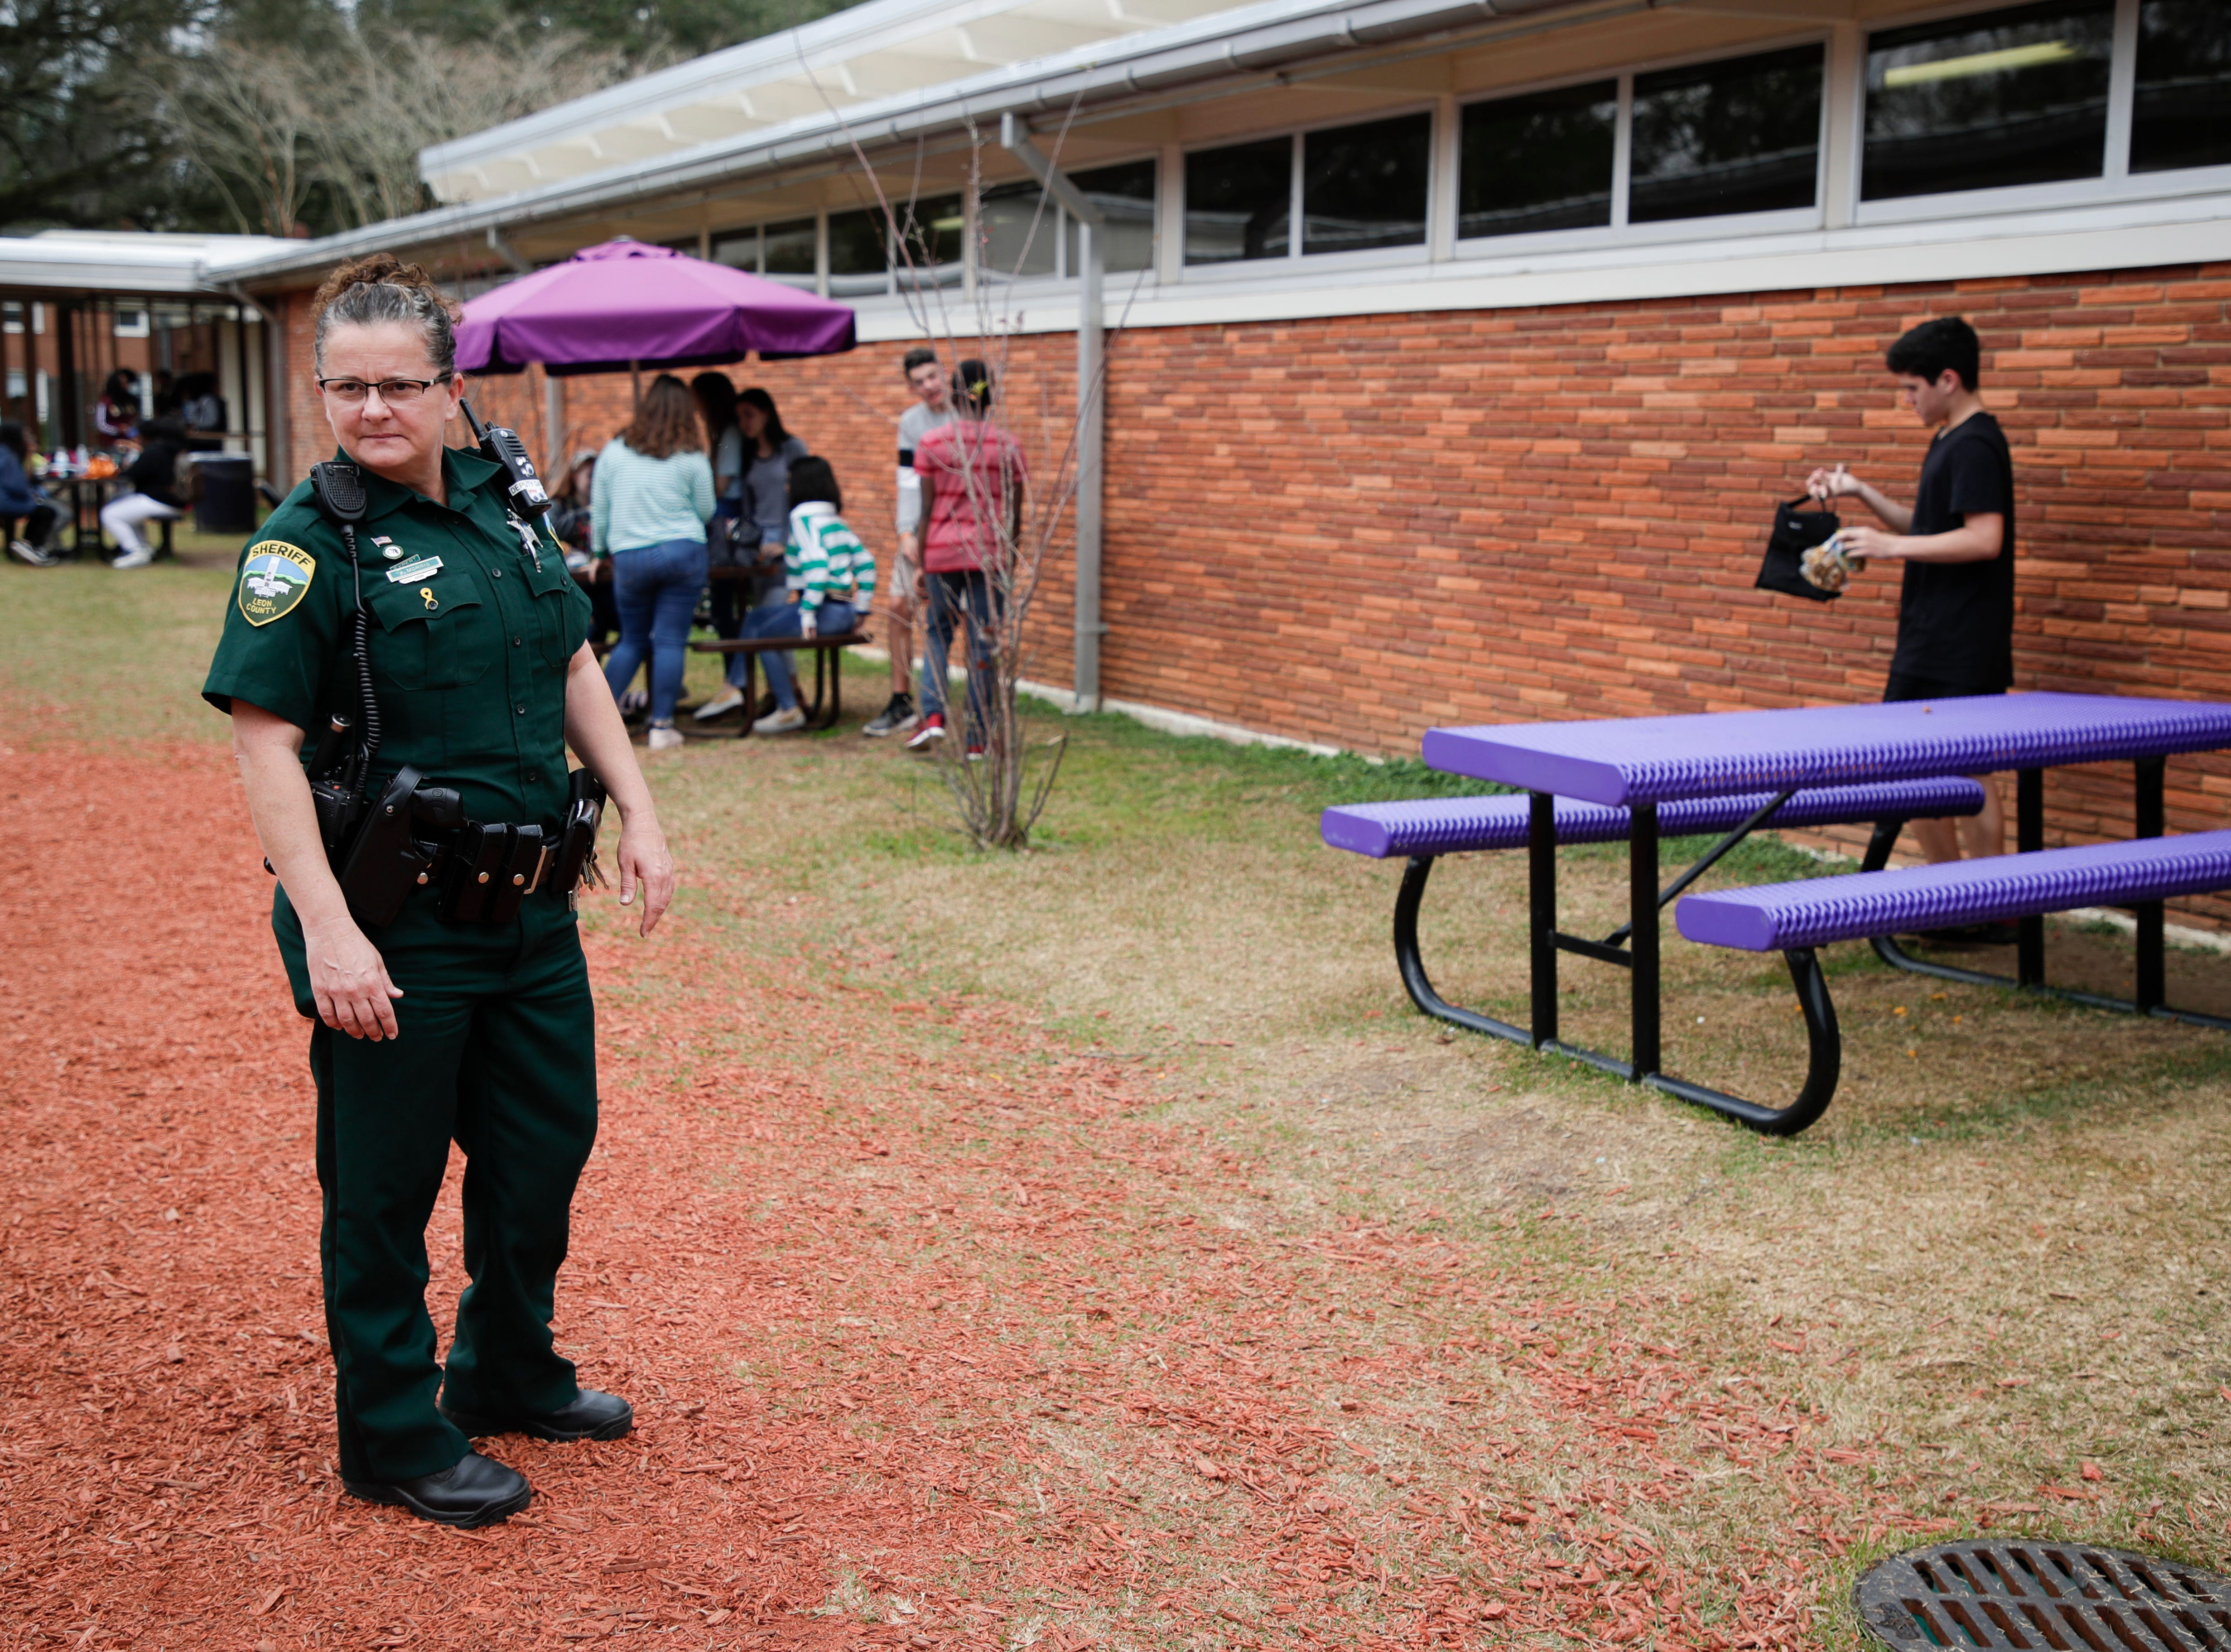 Leon County Sheriff's Department Deputy Jennifer Morris, hangs out where students are eating lunch outside Tuesday, Feb. 12, 2019.